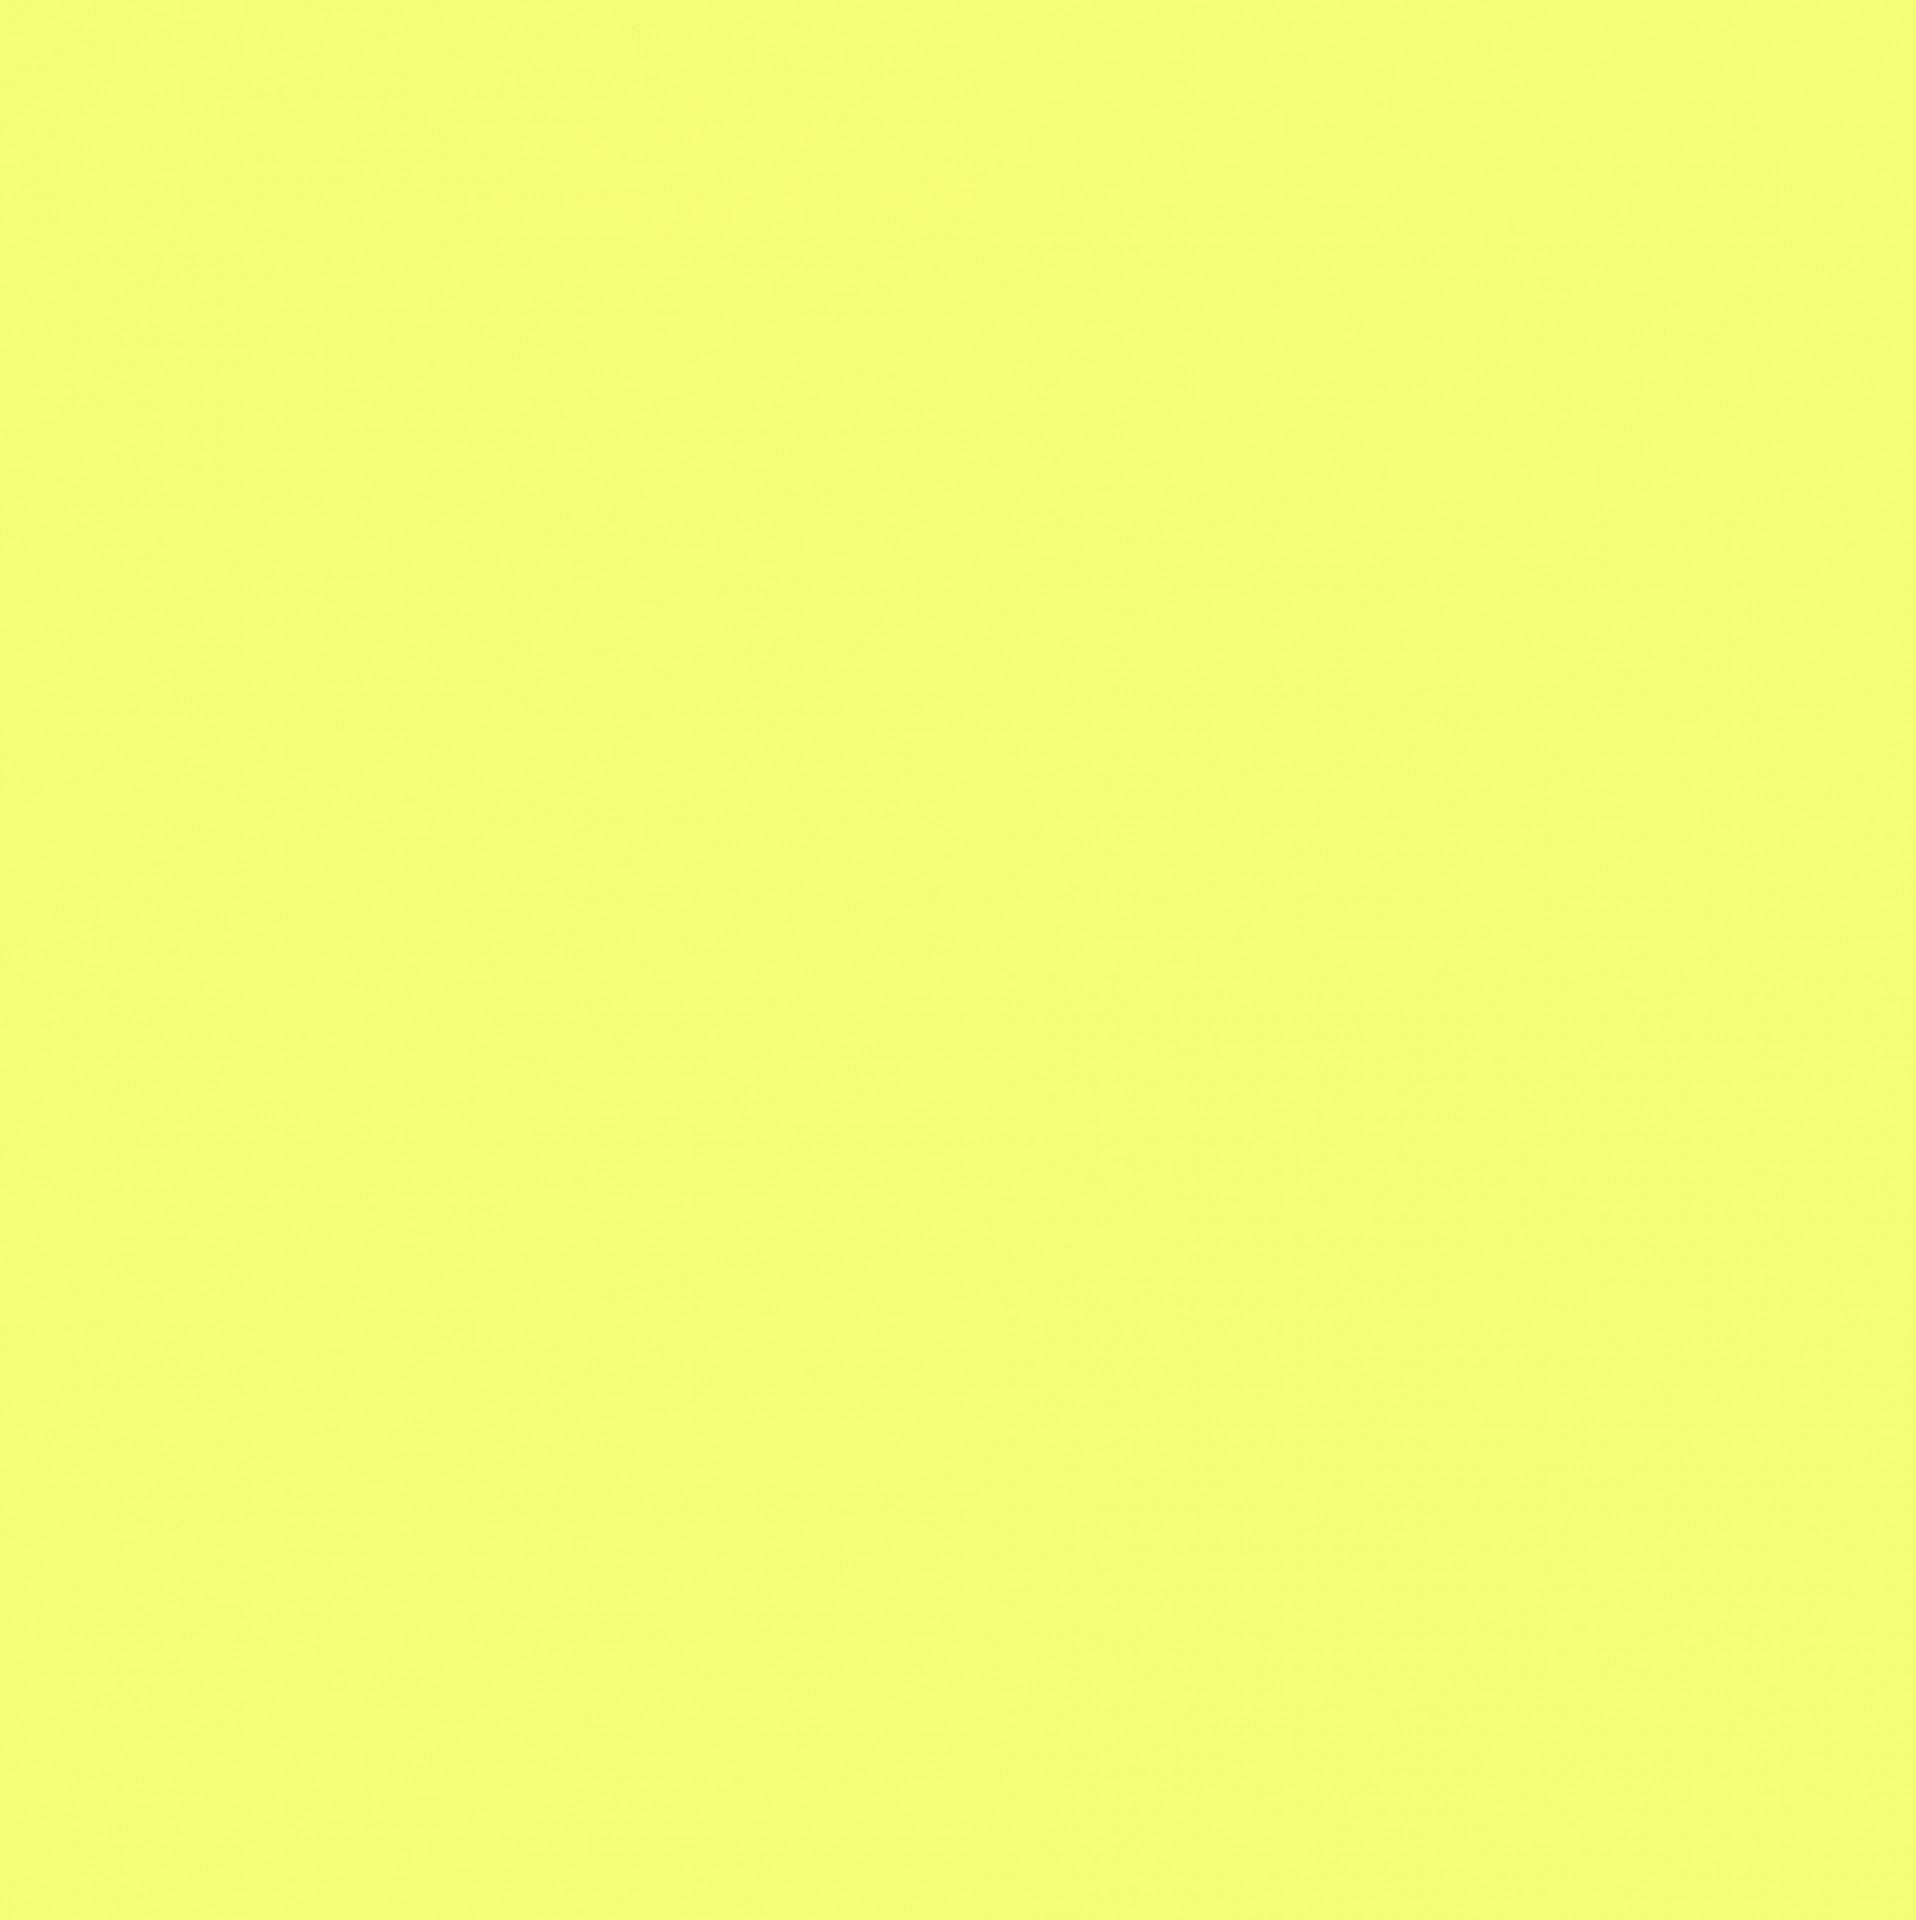 Light Yellow Backgrounds Wallpaper Cave